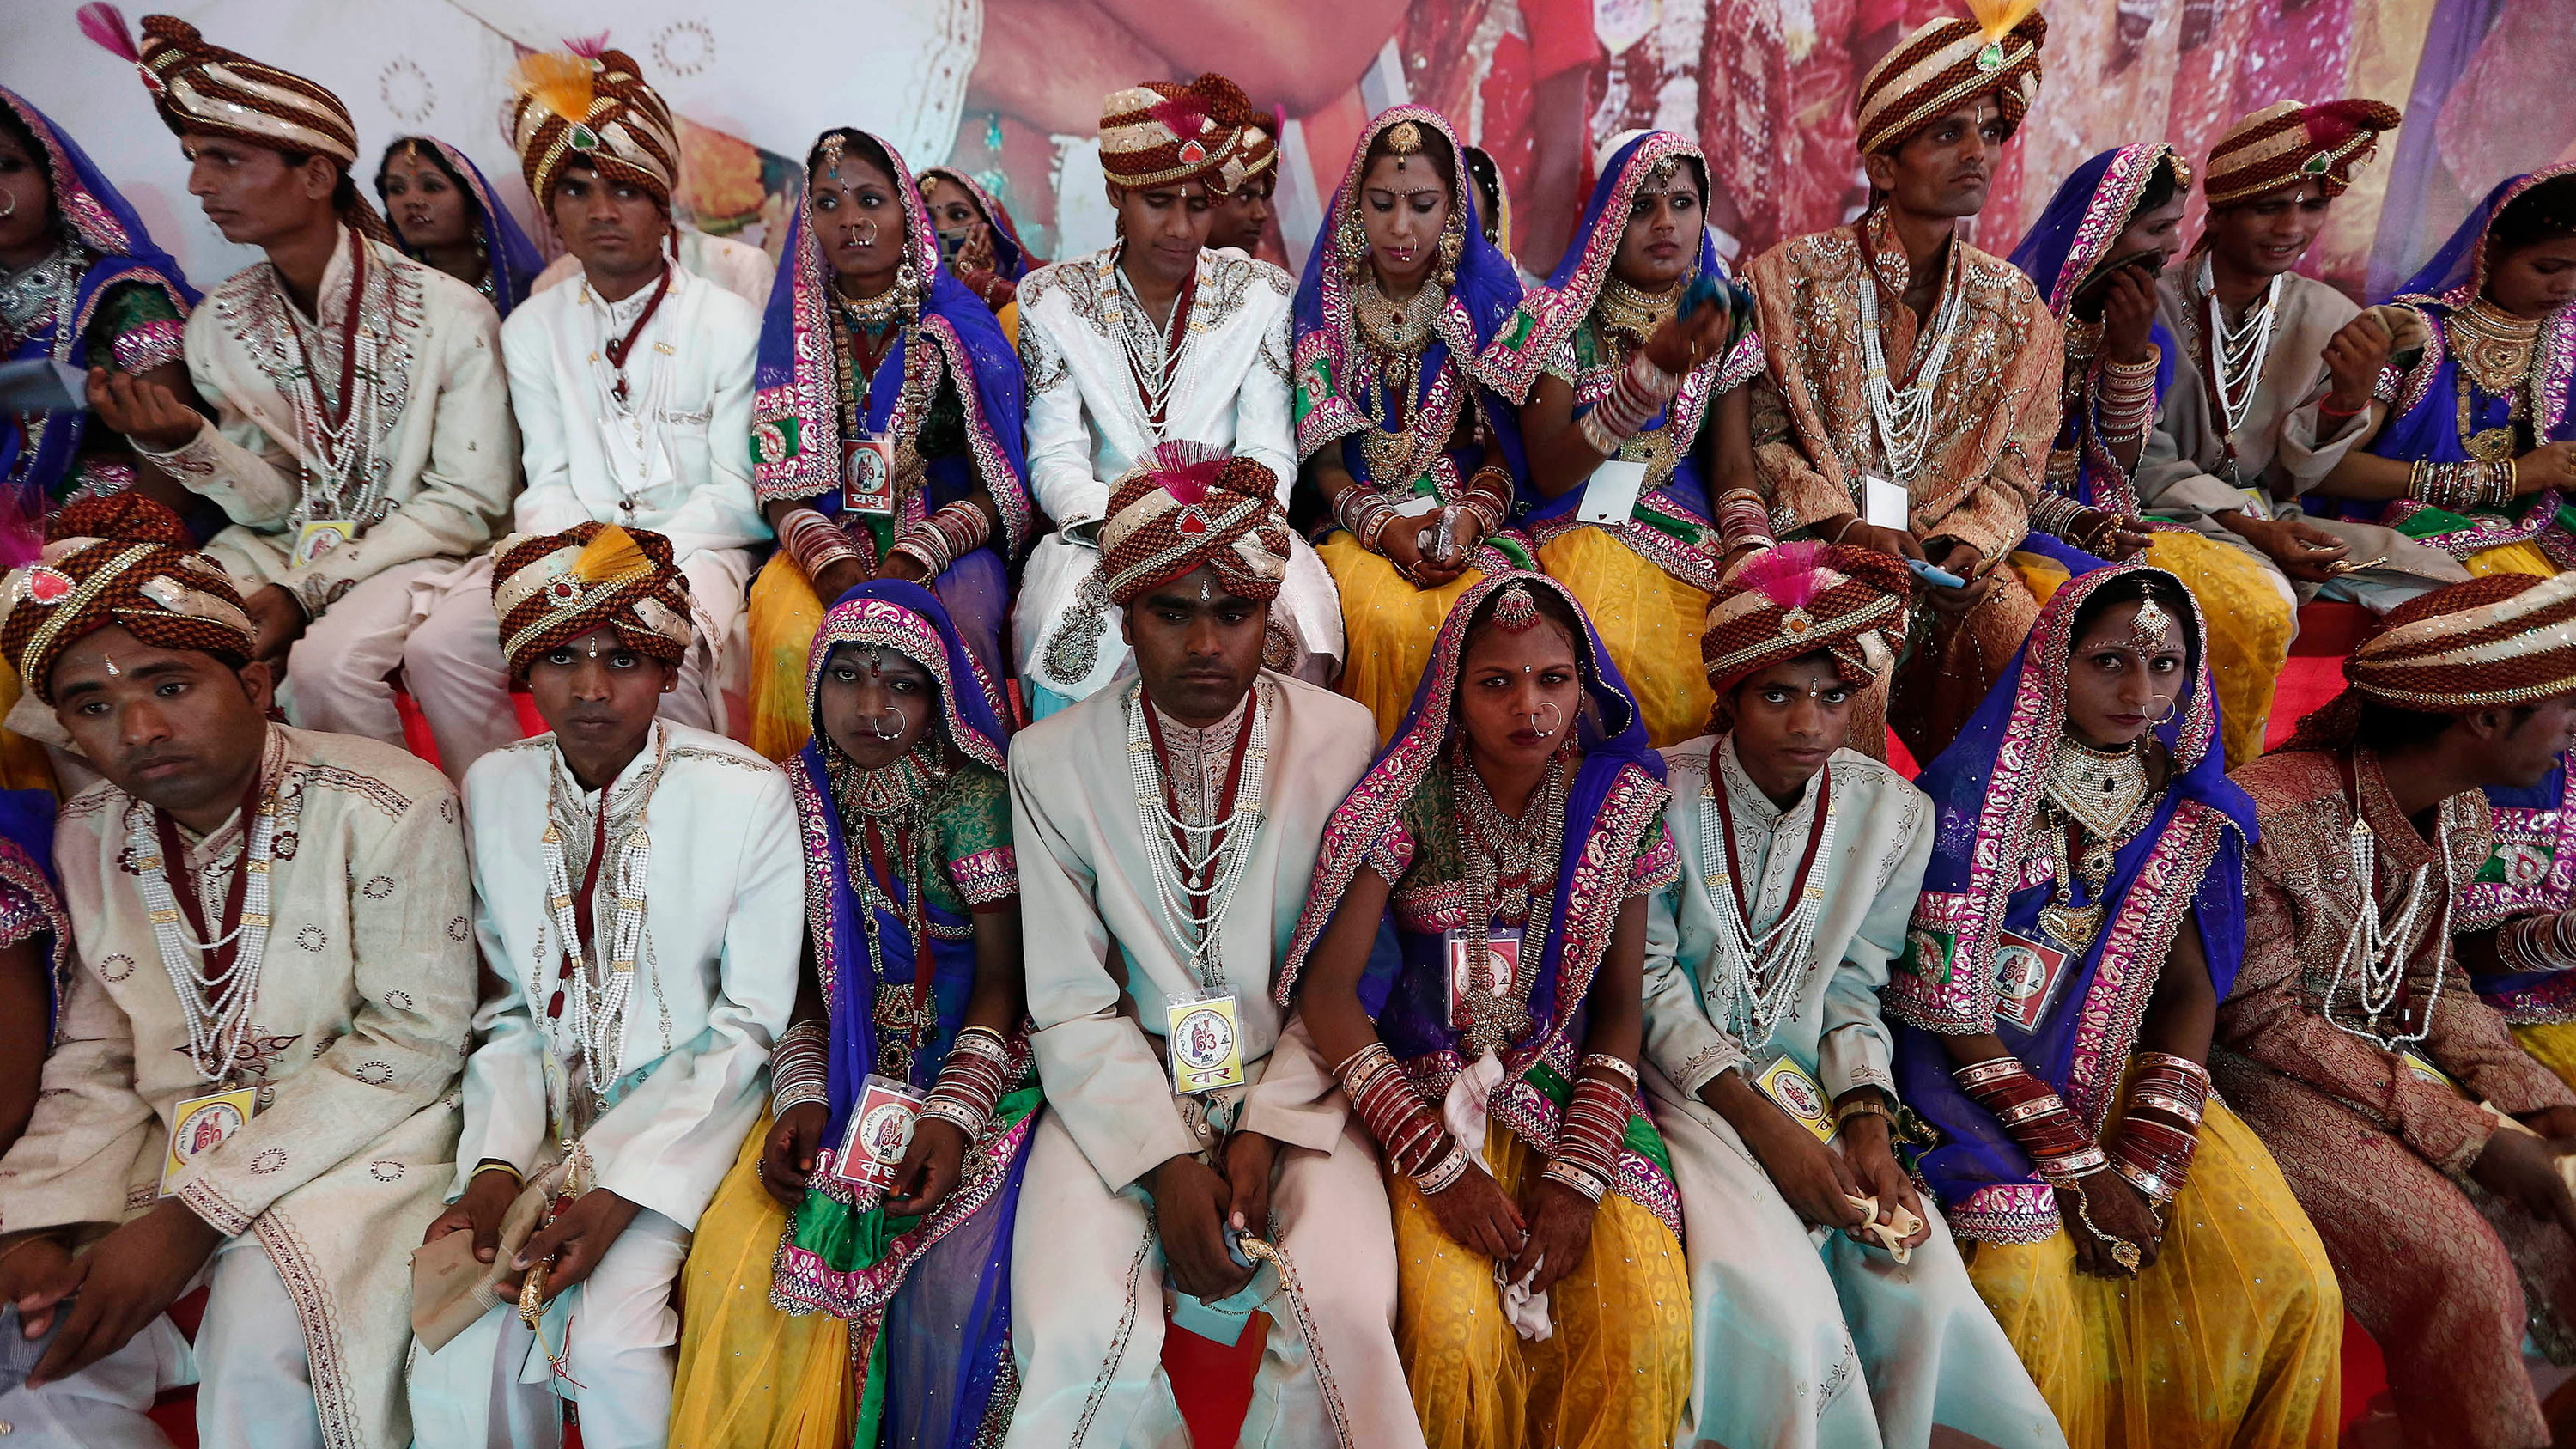 The photo shows a huge number of couples in fancy wedding garb.